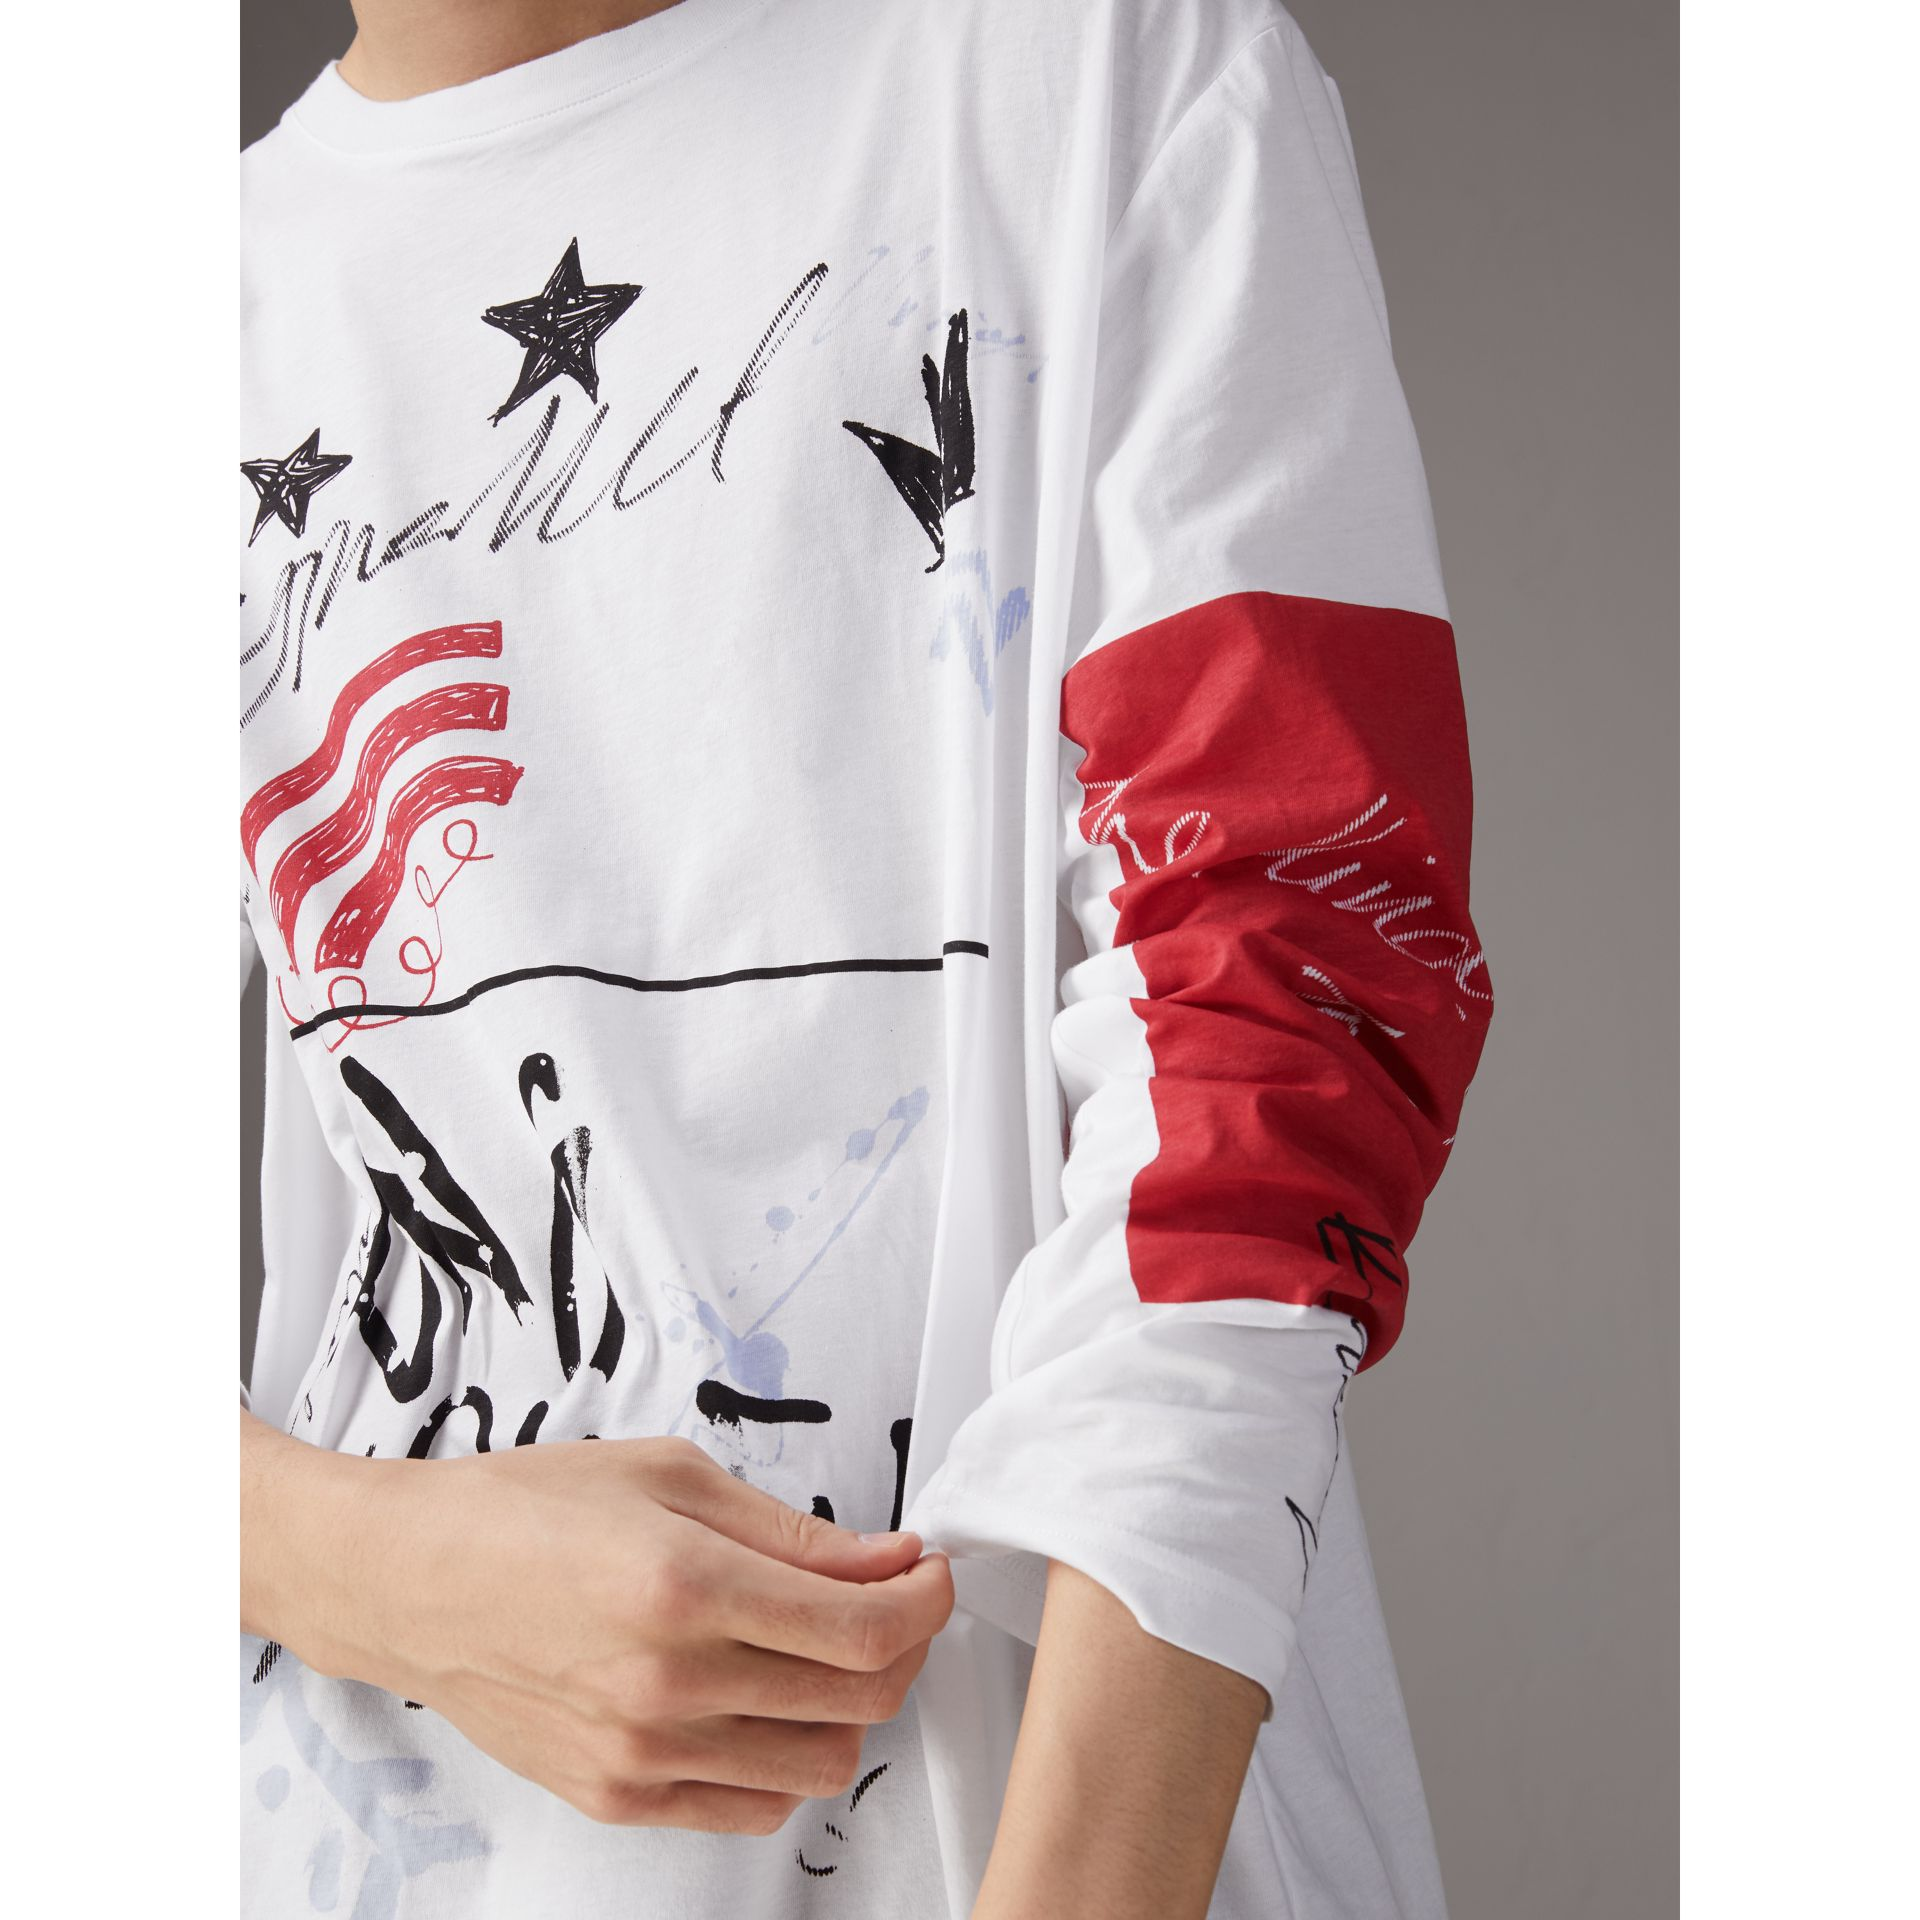 Burberry x Kris Wu Long-sleeve Printed Cotton Top in White - Men | Burberry United Kingdom - gallery image 2